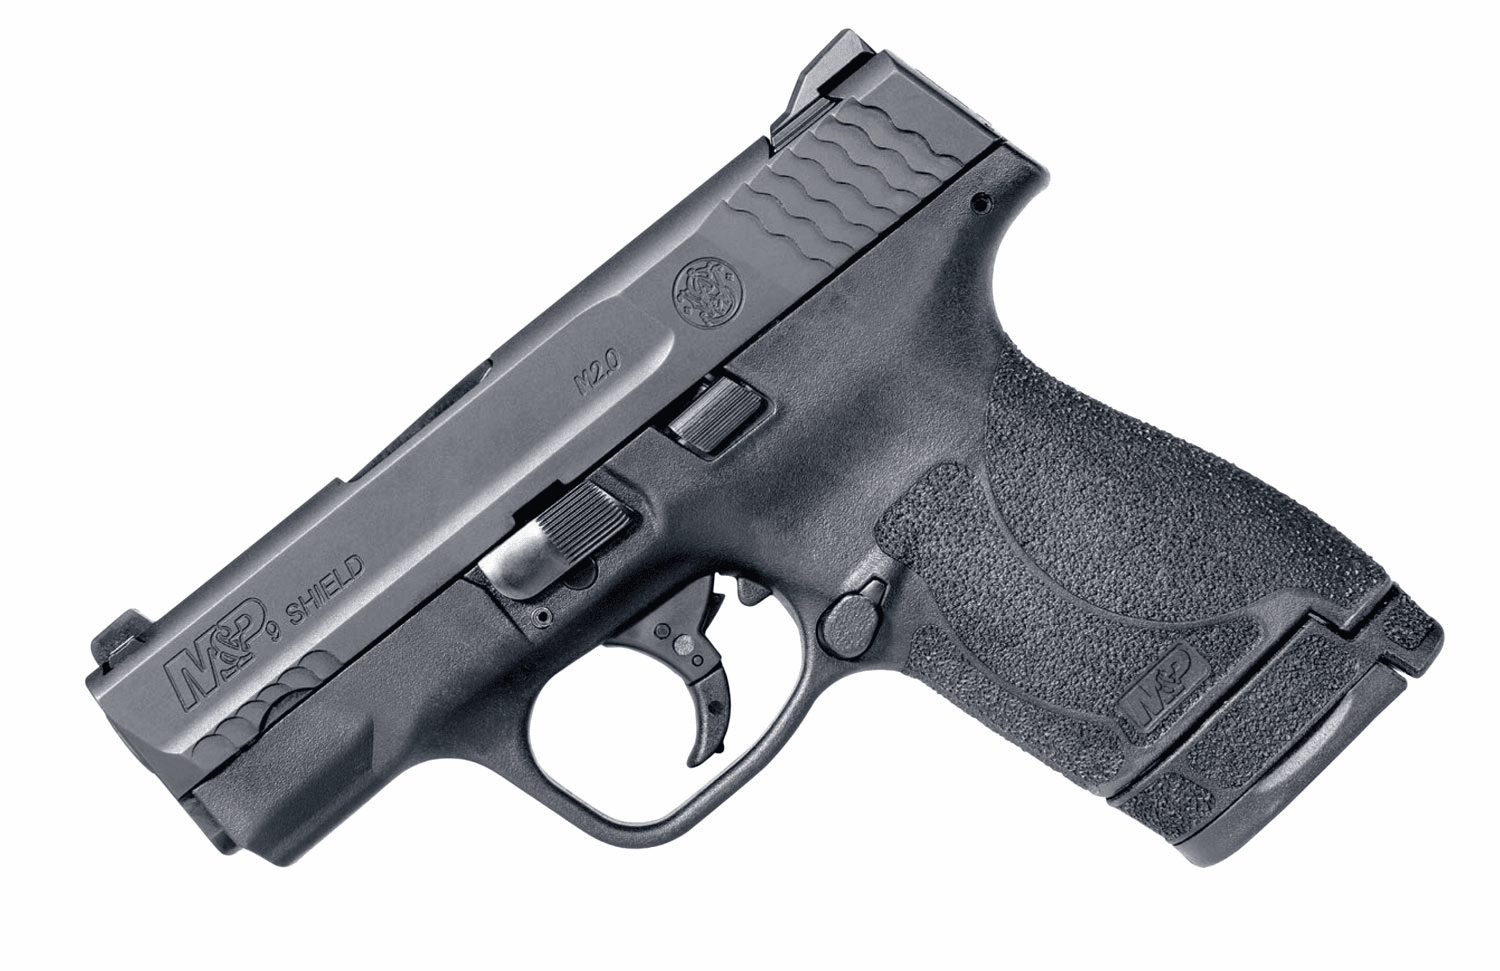 Smith & Wesson M&P 9 Shield M2.0 w/Night Sights (9mm)